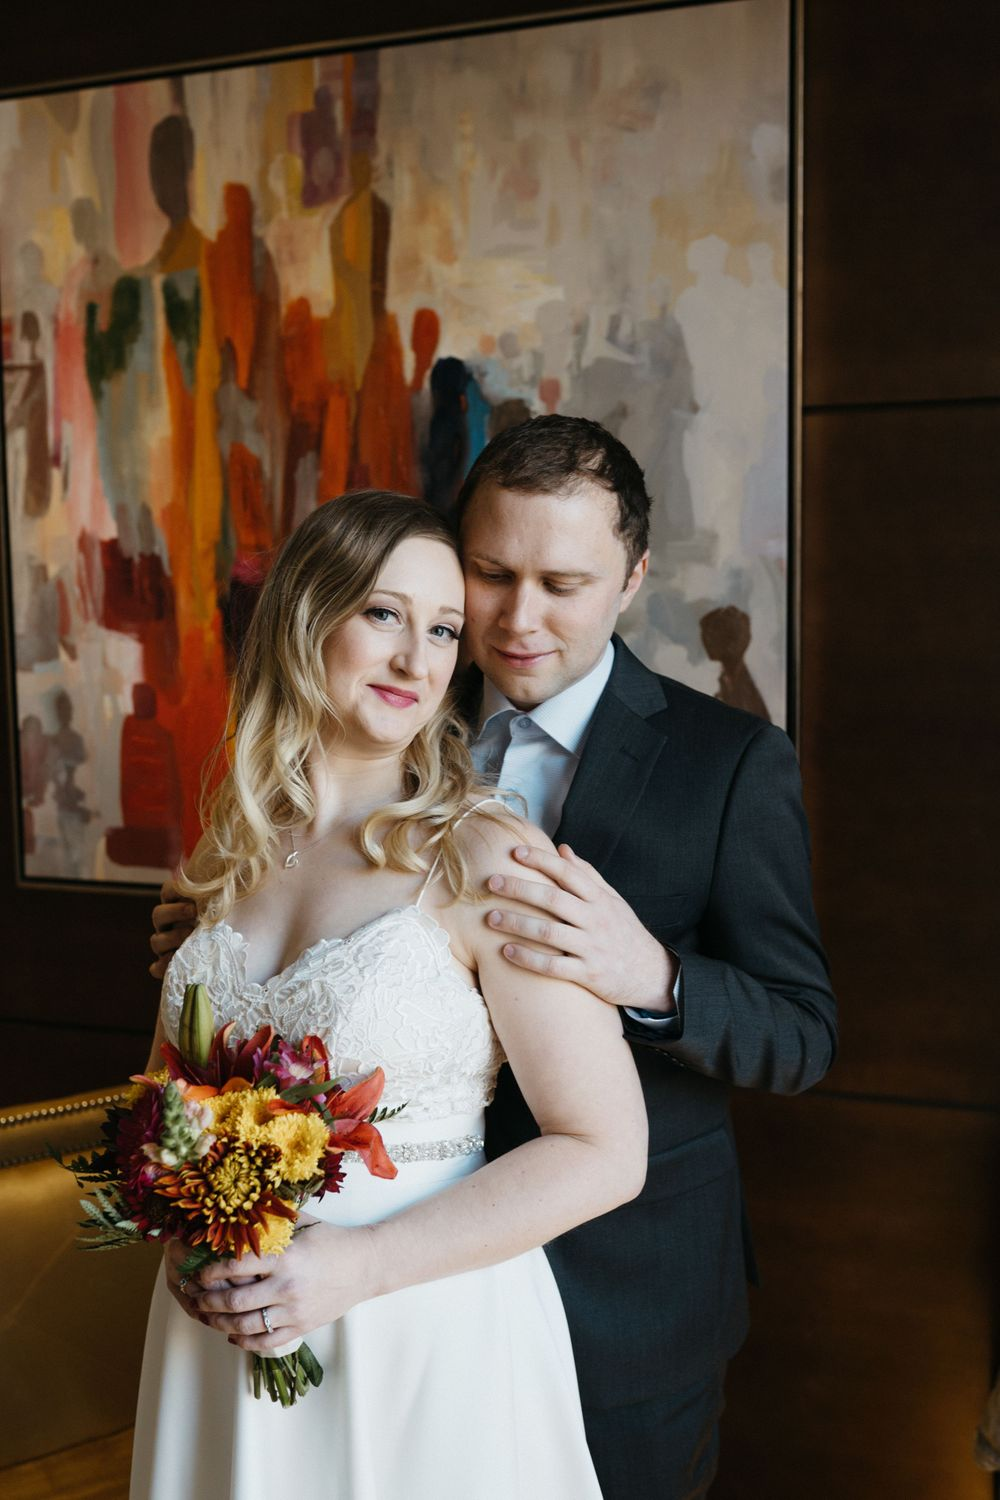 bride-groom-posing-in-front-of-painting-the-republic-on-grand-elopement-desmoines-iowa-raelyn-ramey-photography